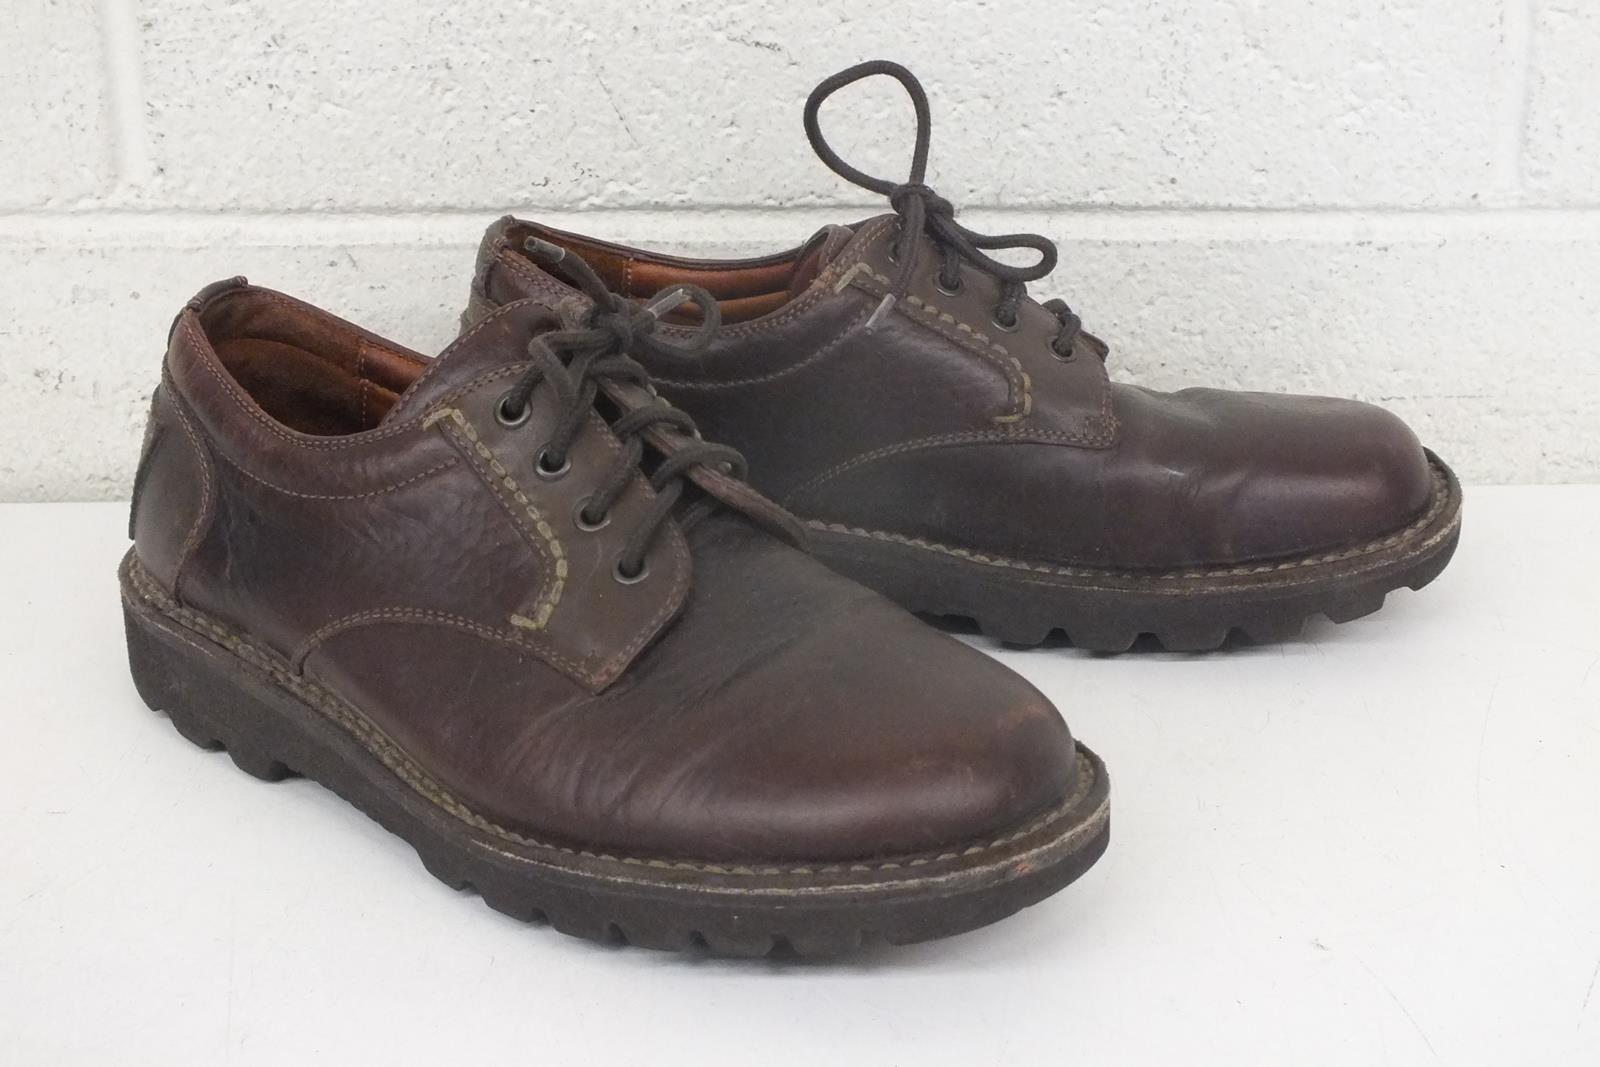 H.S. Trask High-Quality Brown Leather Lace-Up shoes US Men's 8 Fast Shipping